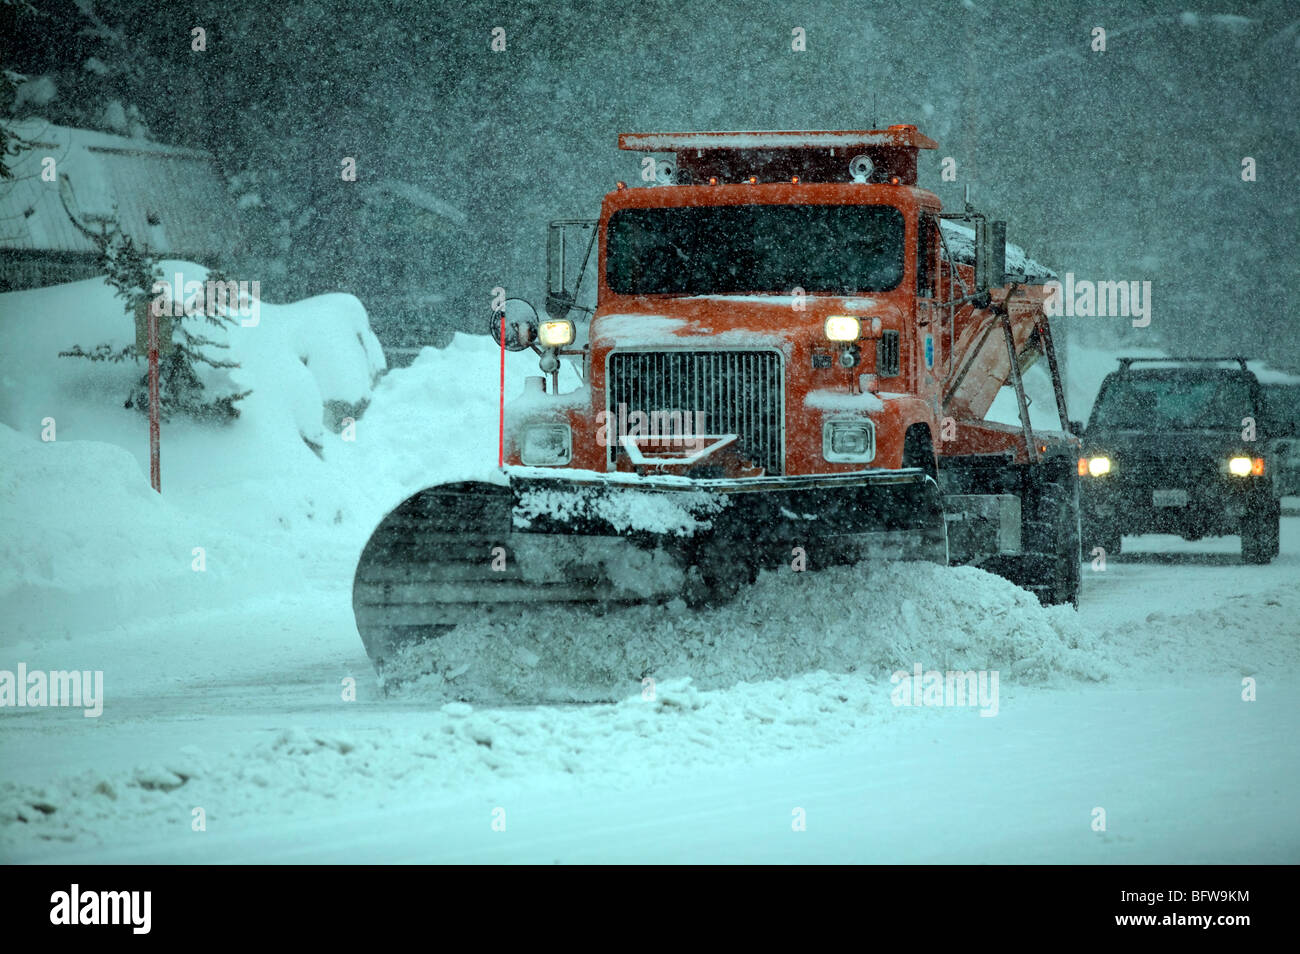 Snow ploughing in Mammoth Mountain California. - Stock Image